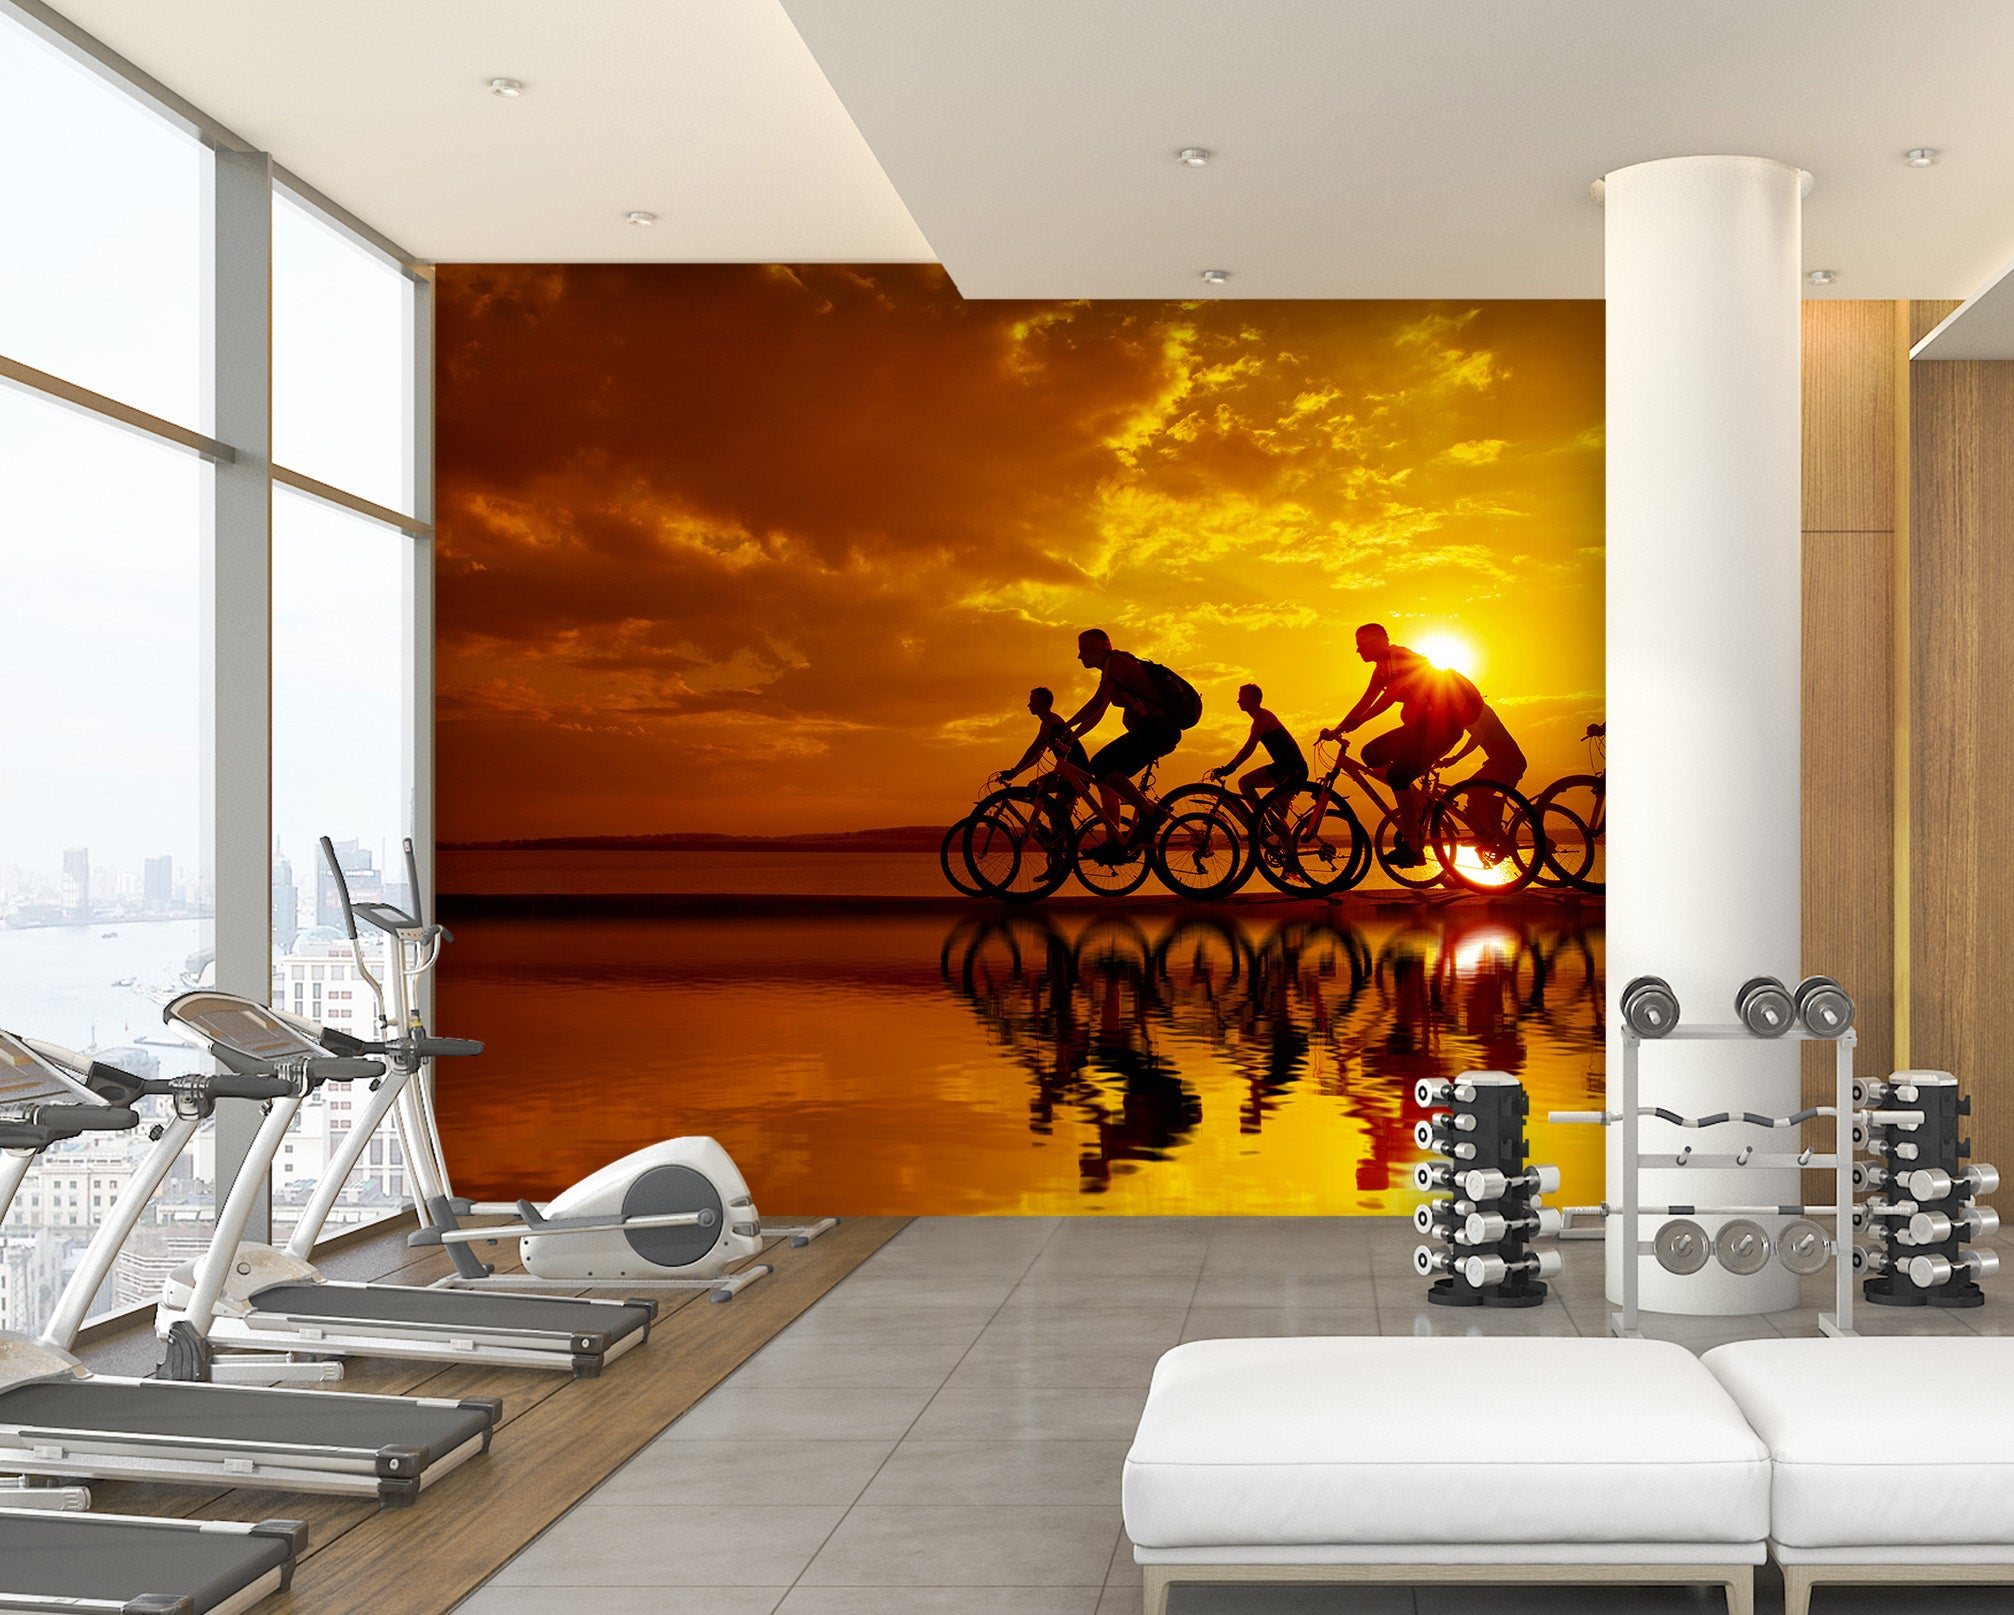 3D Morning Bike Ride 220 Wall Murals